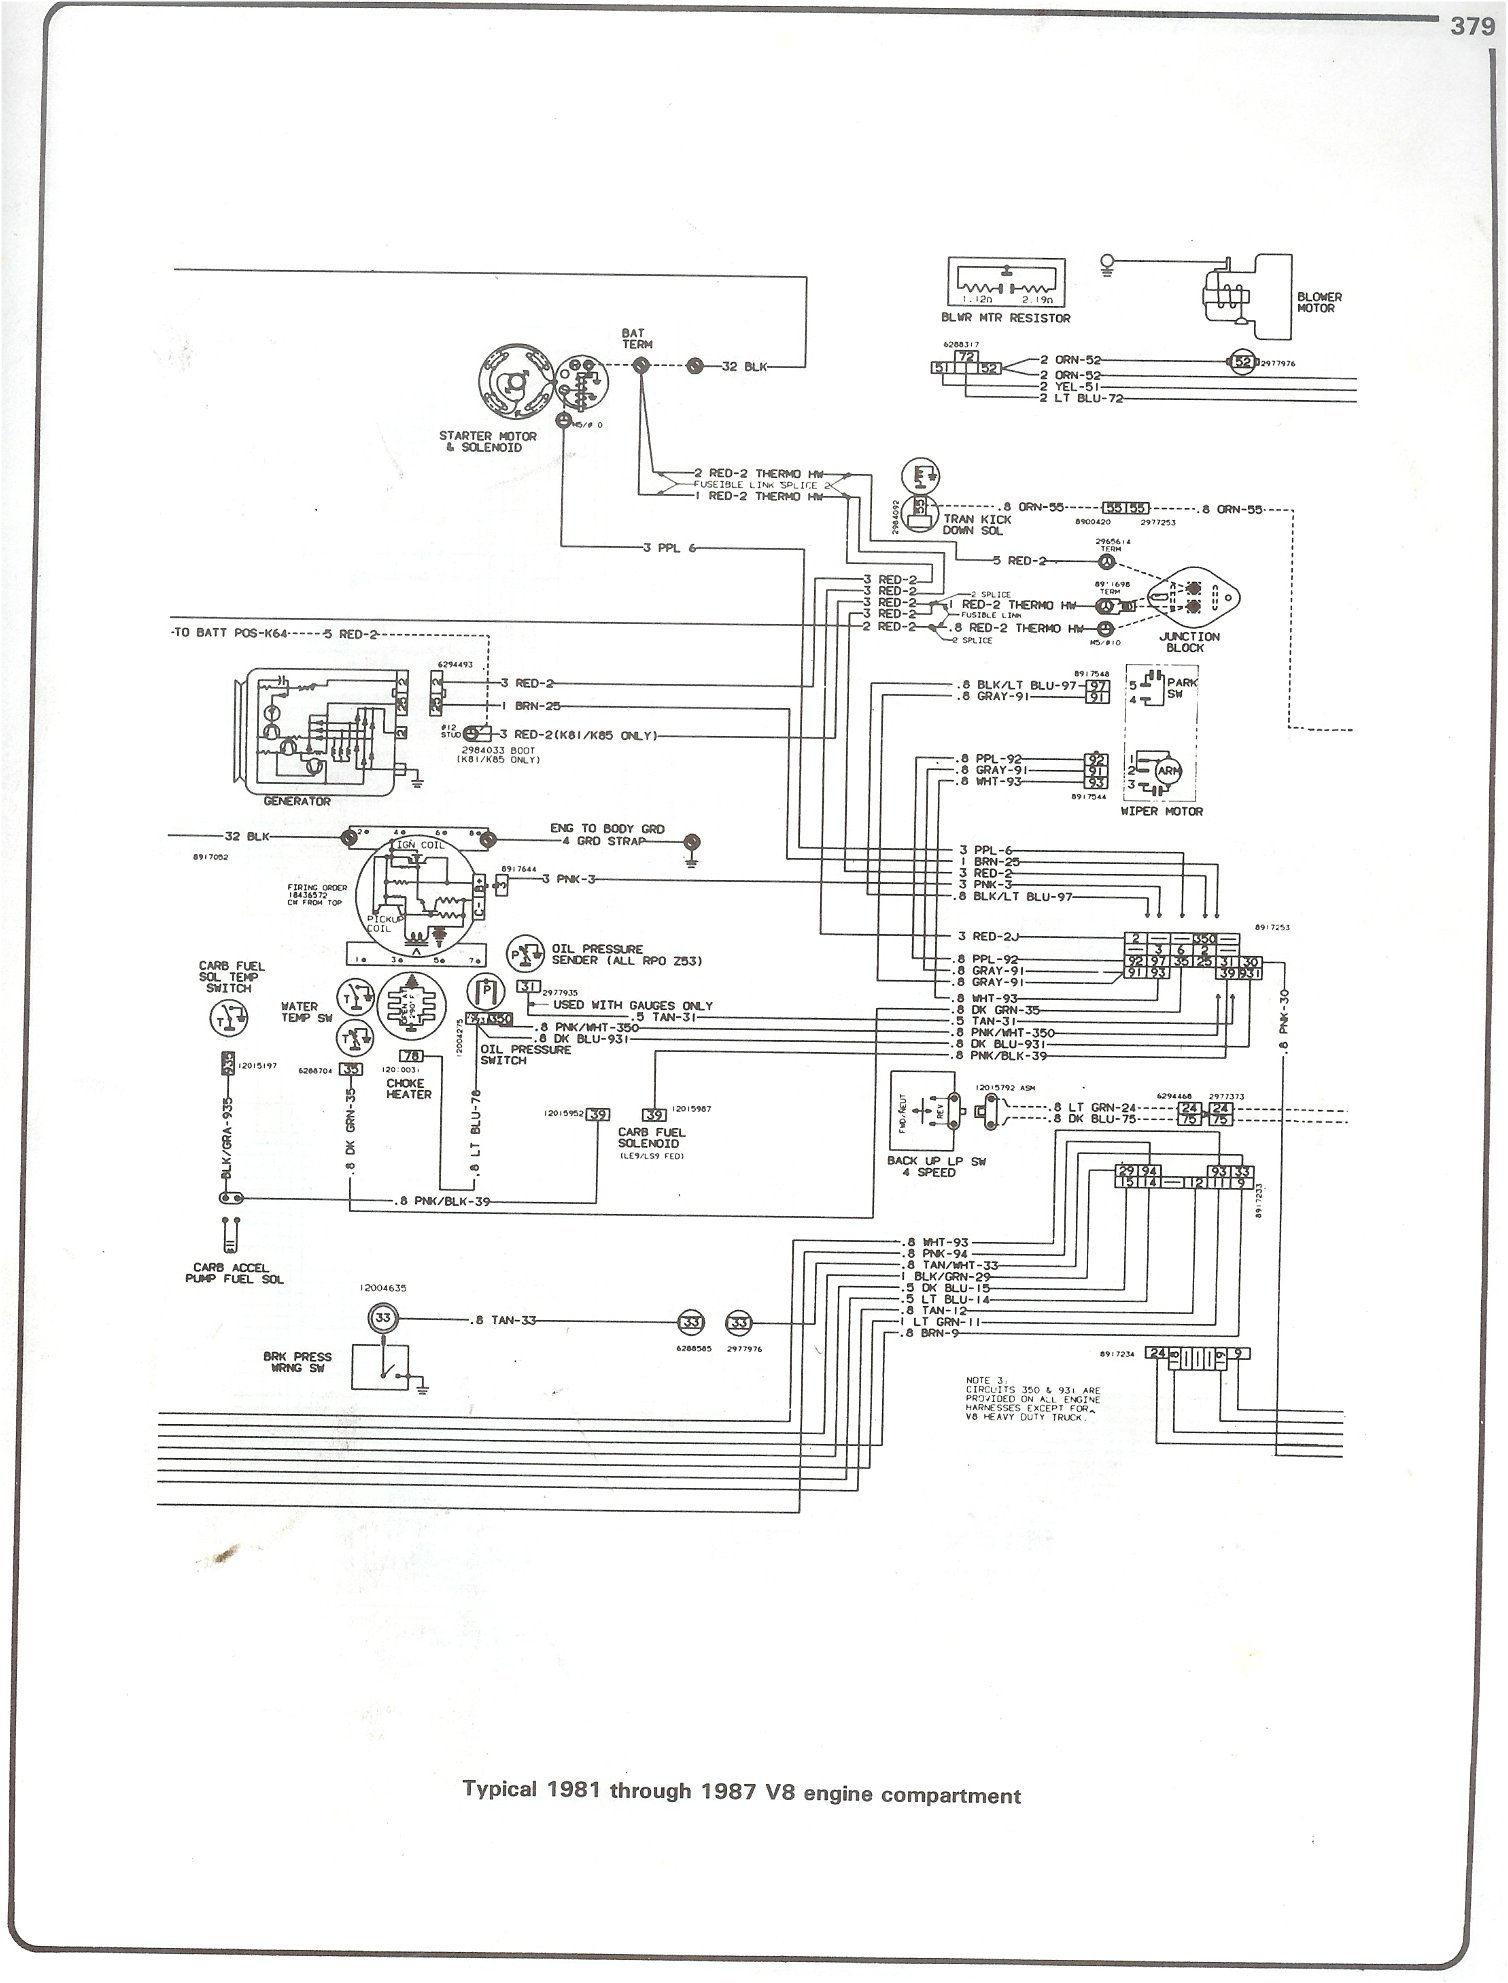 86 Chevy Truck Wiring Harness | Wiring Diagram - 87 Chevy Truck Wiring Diagram